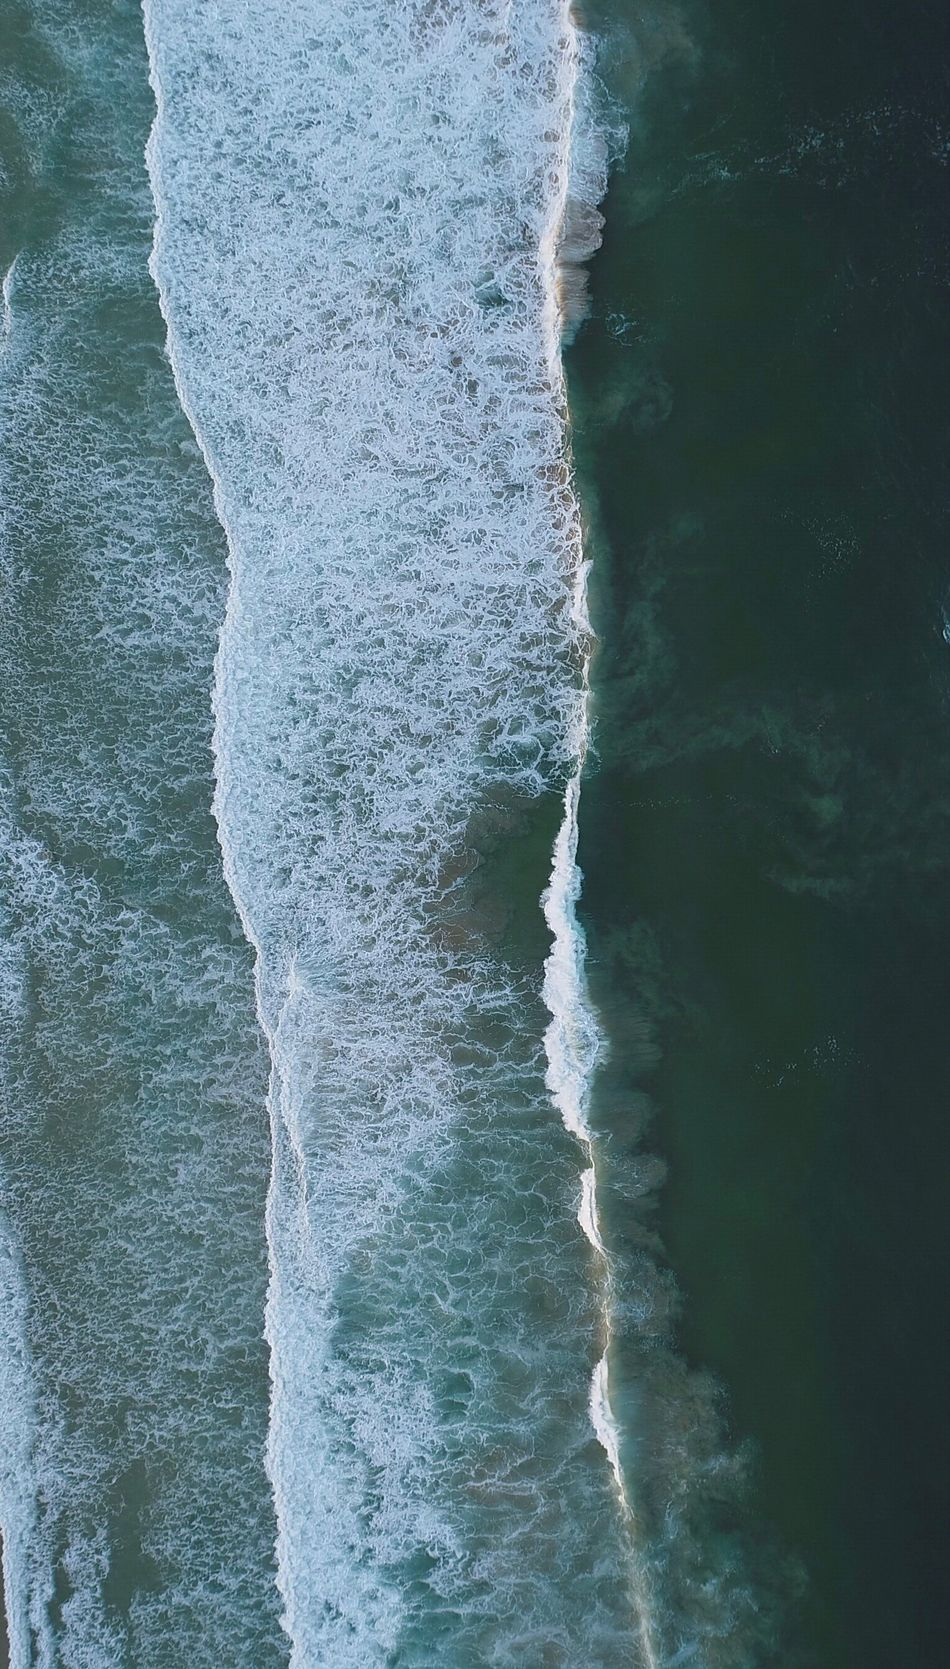 Vertical shot (drone) of waves🌊 Water Nature Beauty In Nature No People Waterfront Motion Day Tranquility Wave Sea Scenics Outdoors Power In Nature Backgrounds Dronephotography Droneshot Drone  Phantom 4 Pro